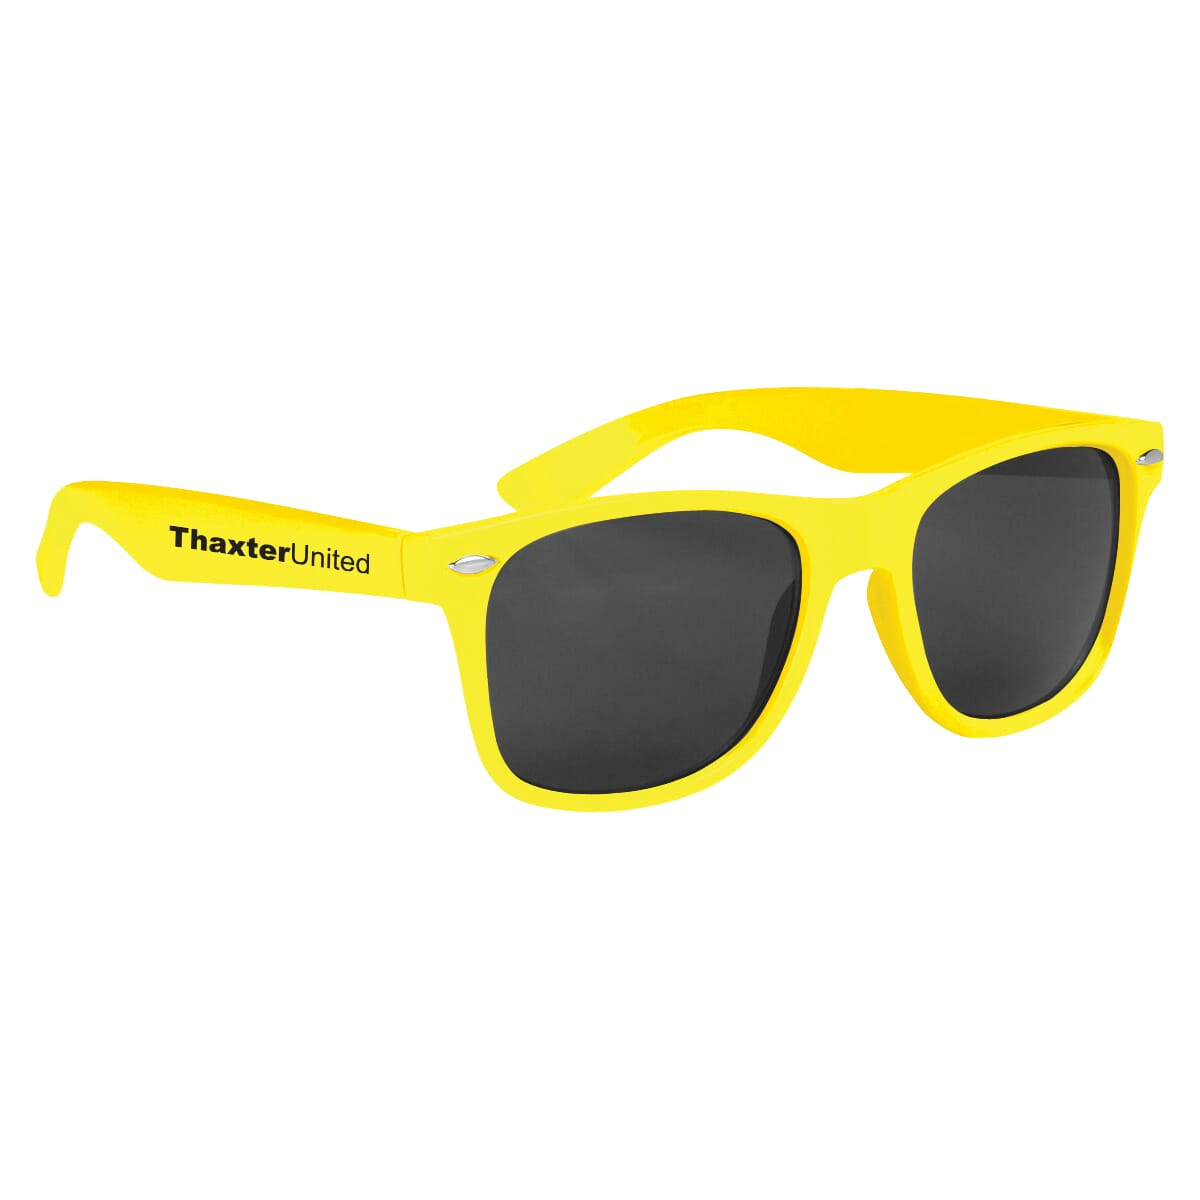 Yellow retro style sunglasses with logo